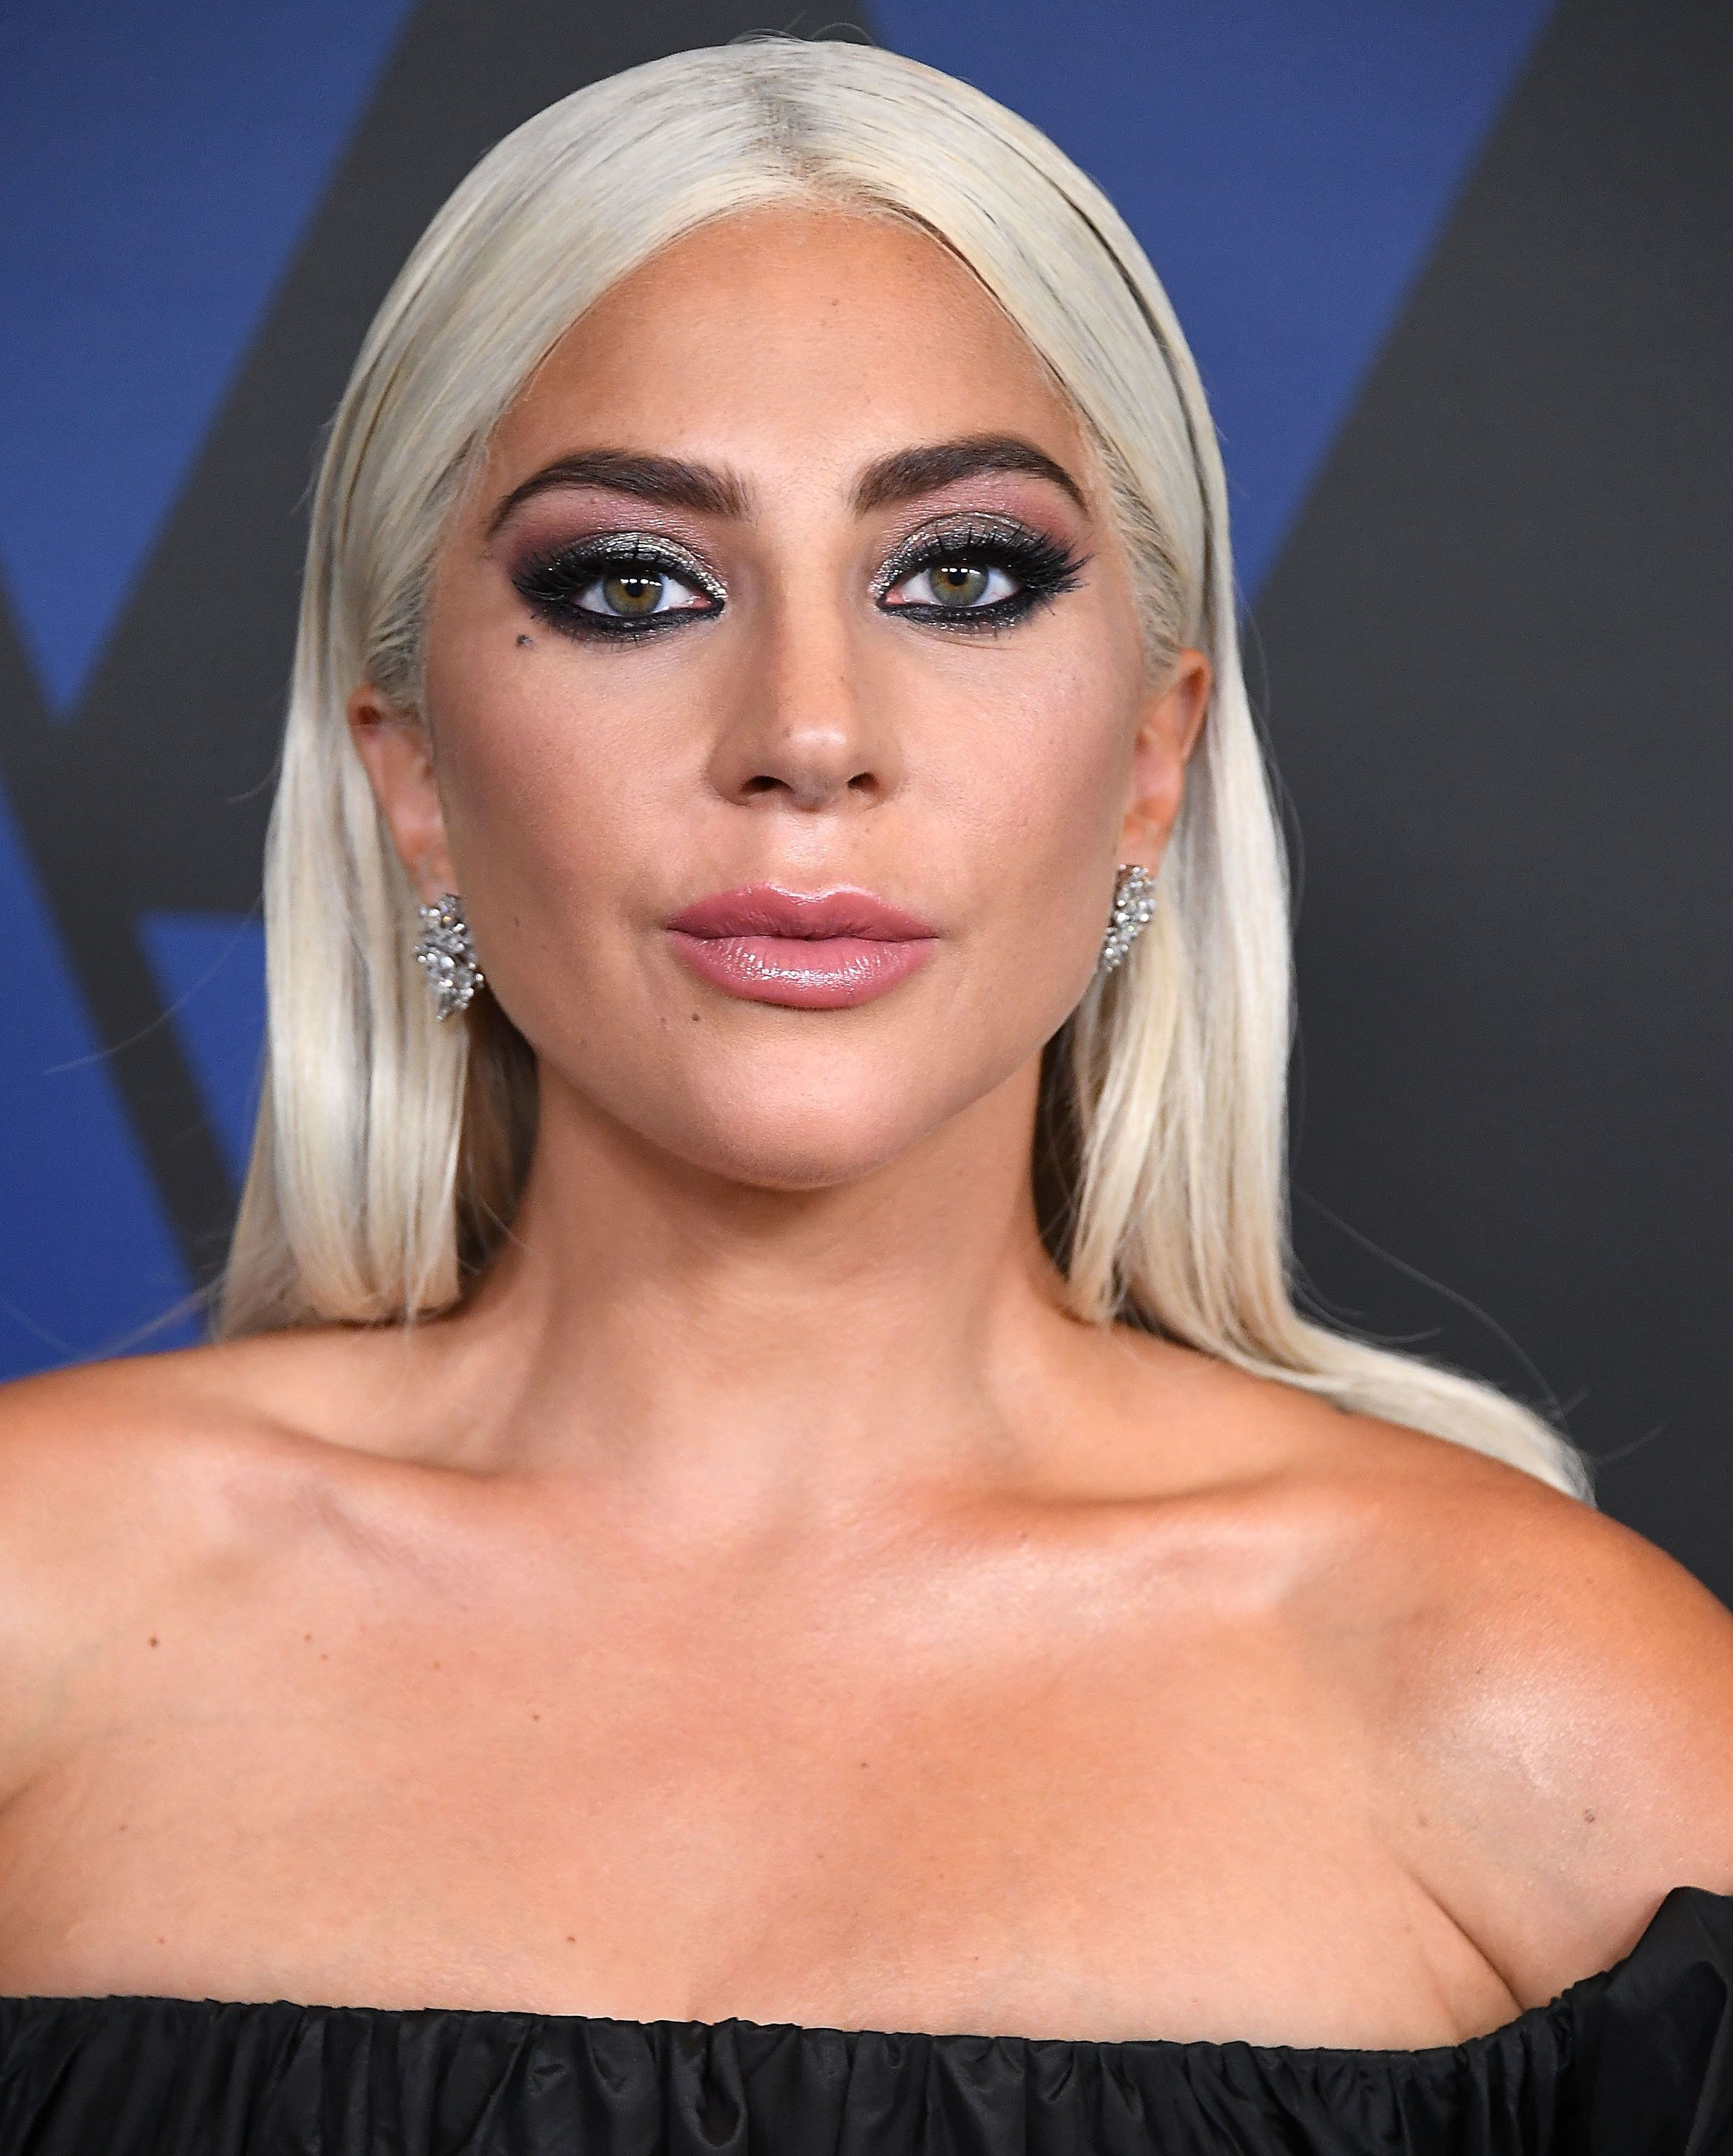 Lady Gaga Says Harassment Used To Be A 'Rule, Not An Exception' In American Music